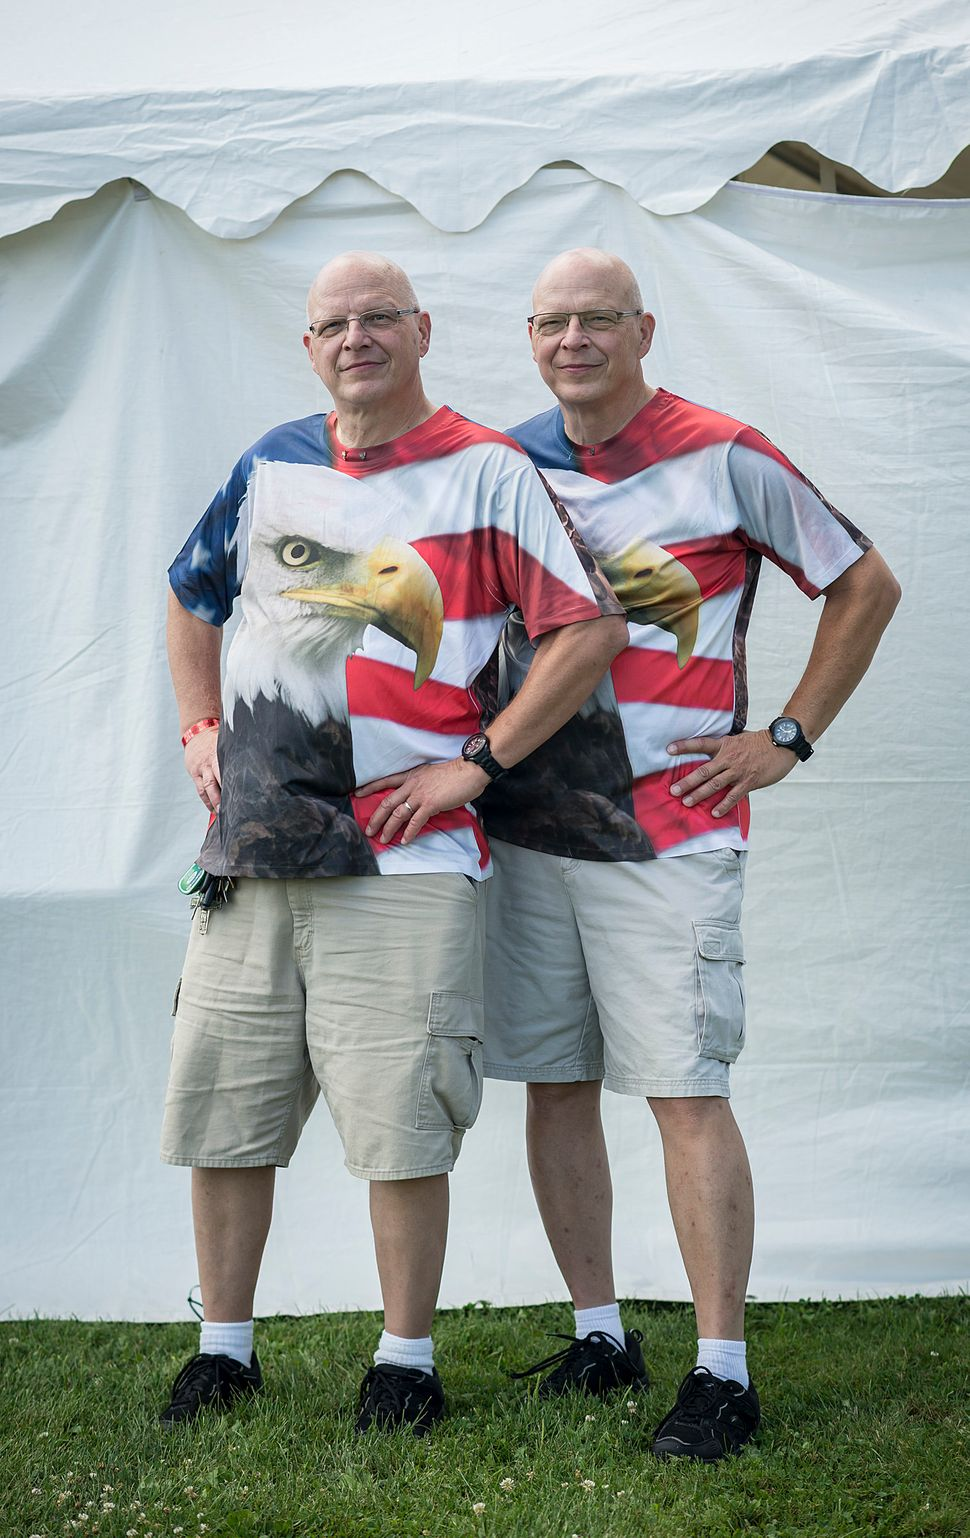 Jerry(left) and John Starrett are all American.